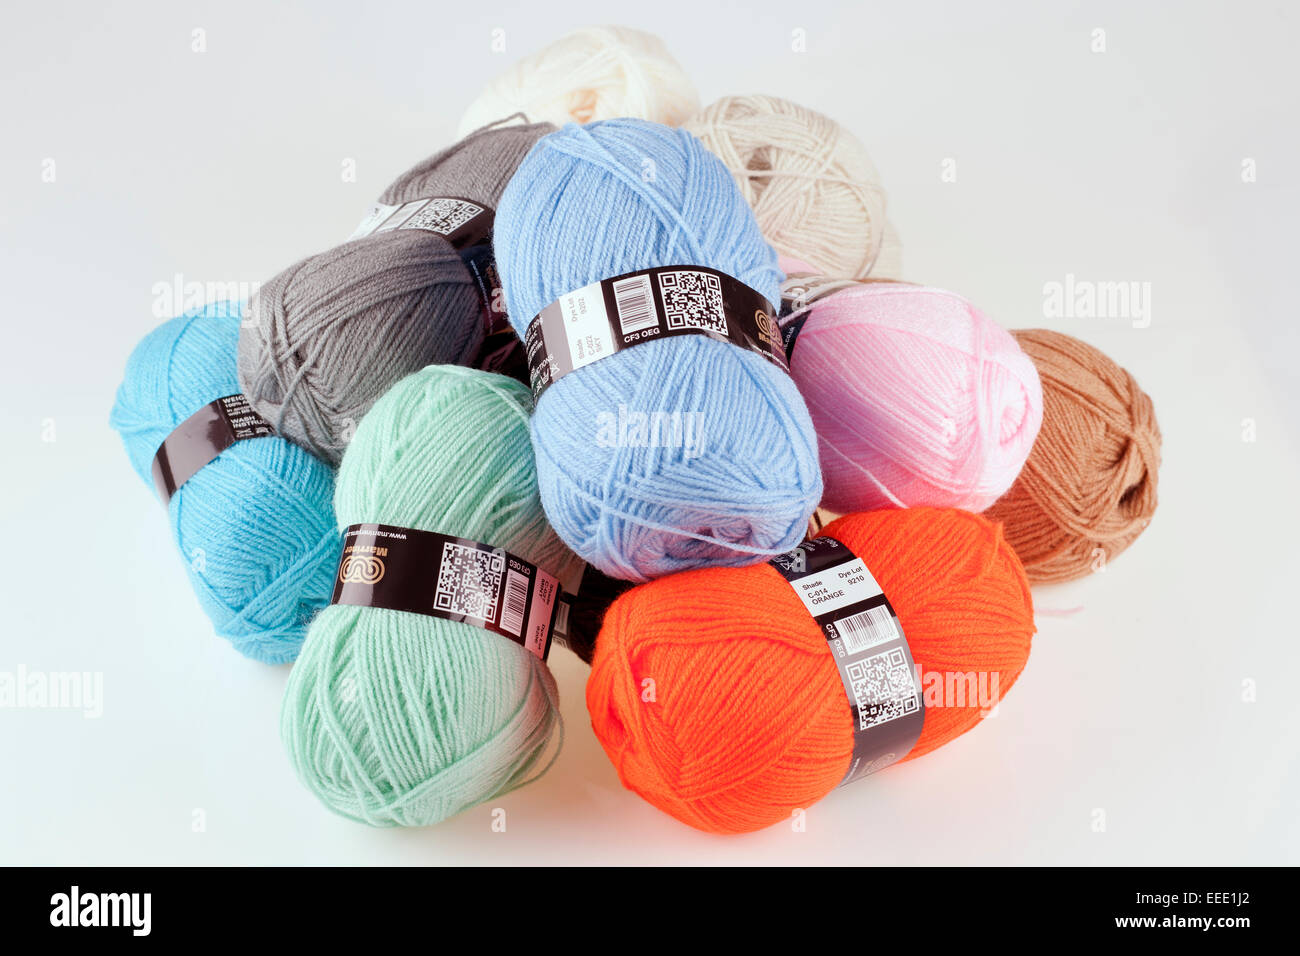 Pile of different coloured balls of double knitting wool - Stock Image